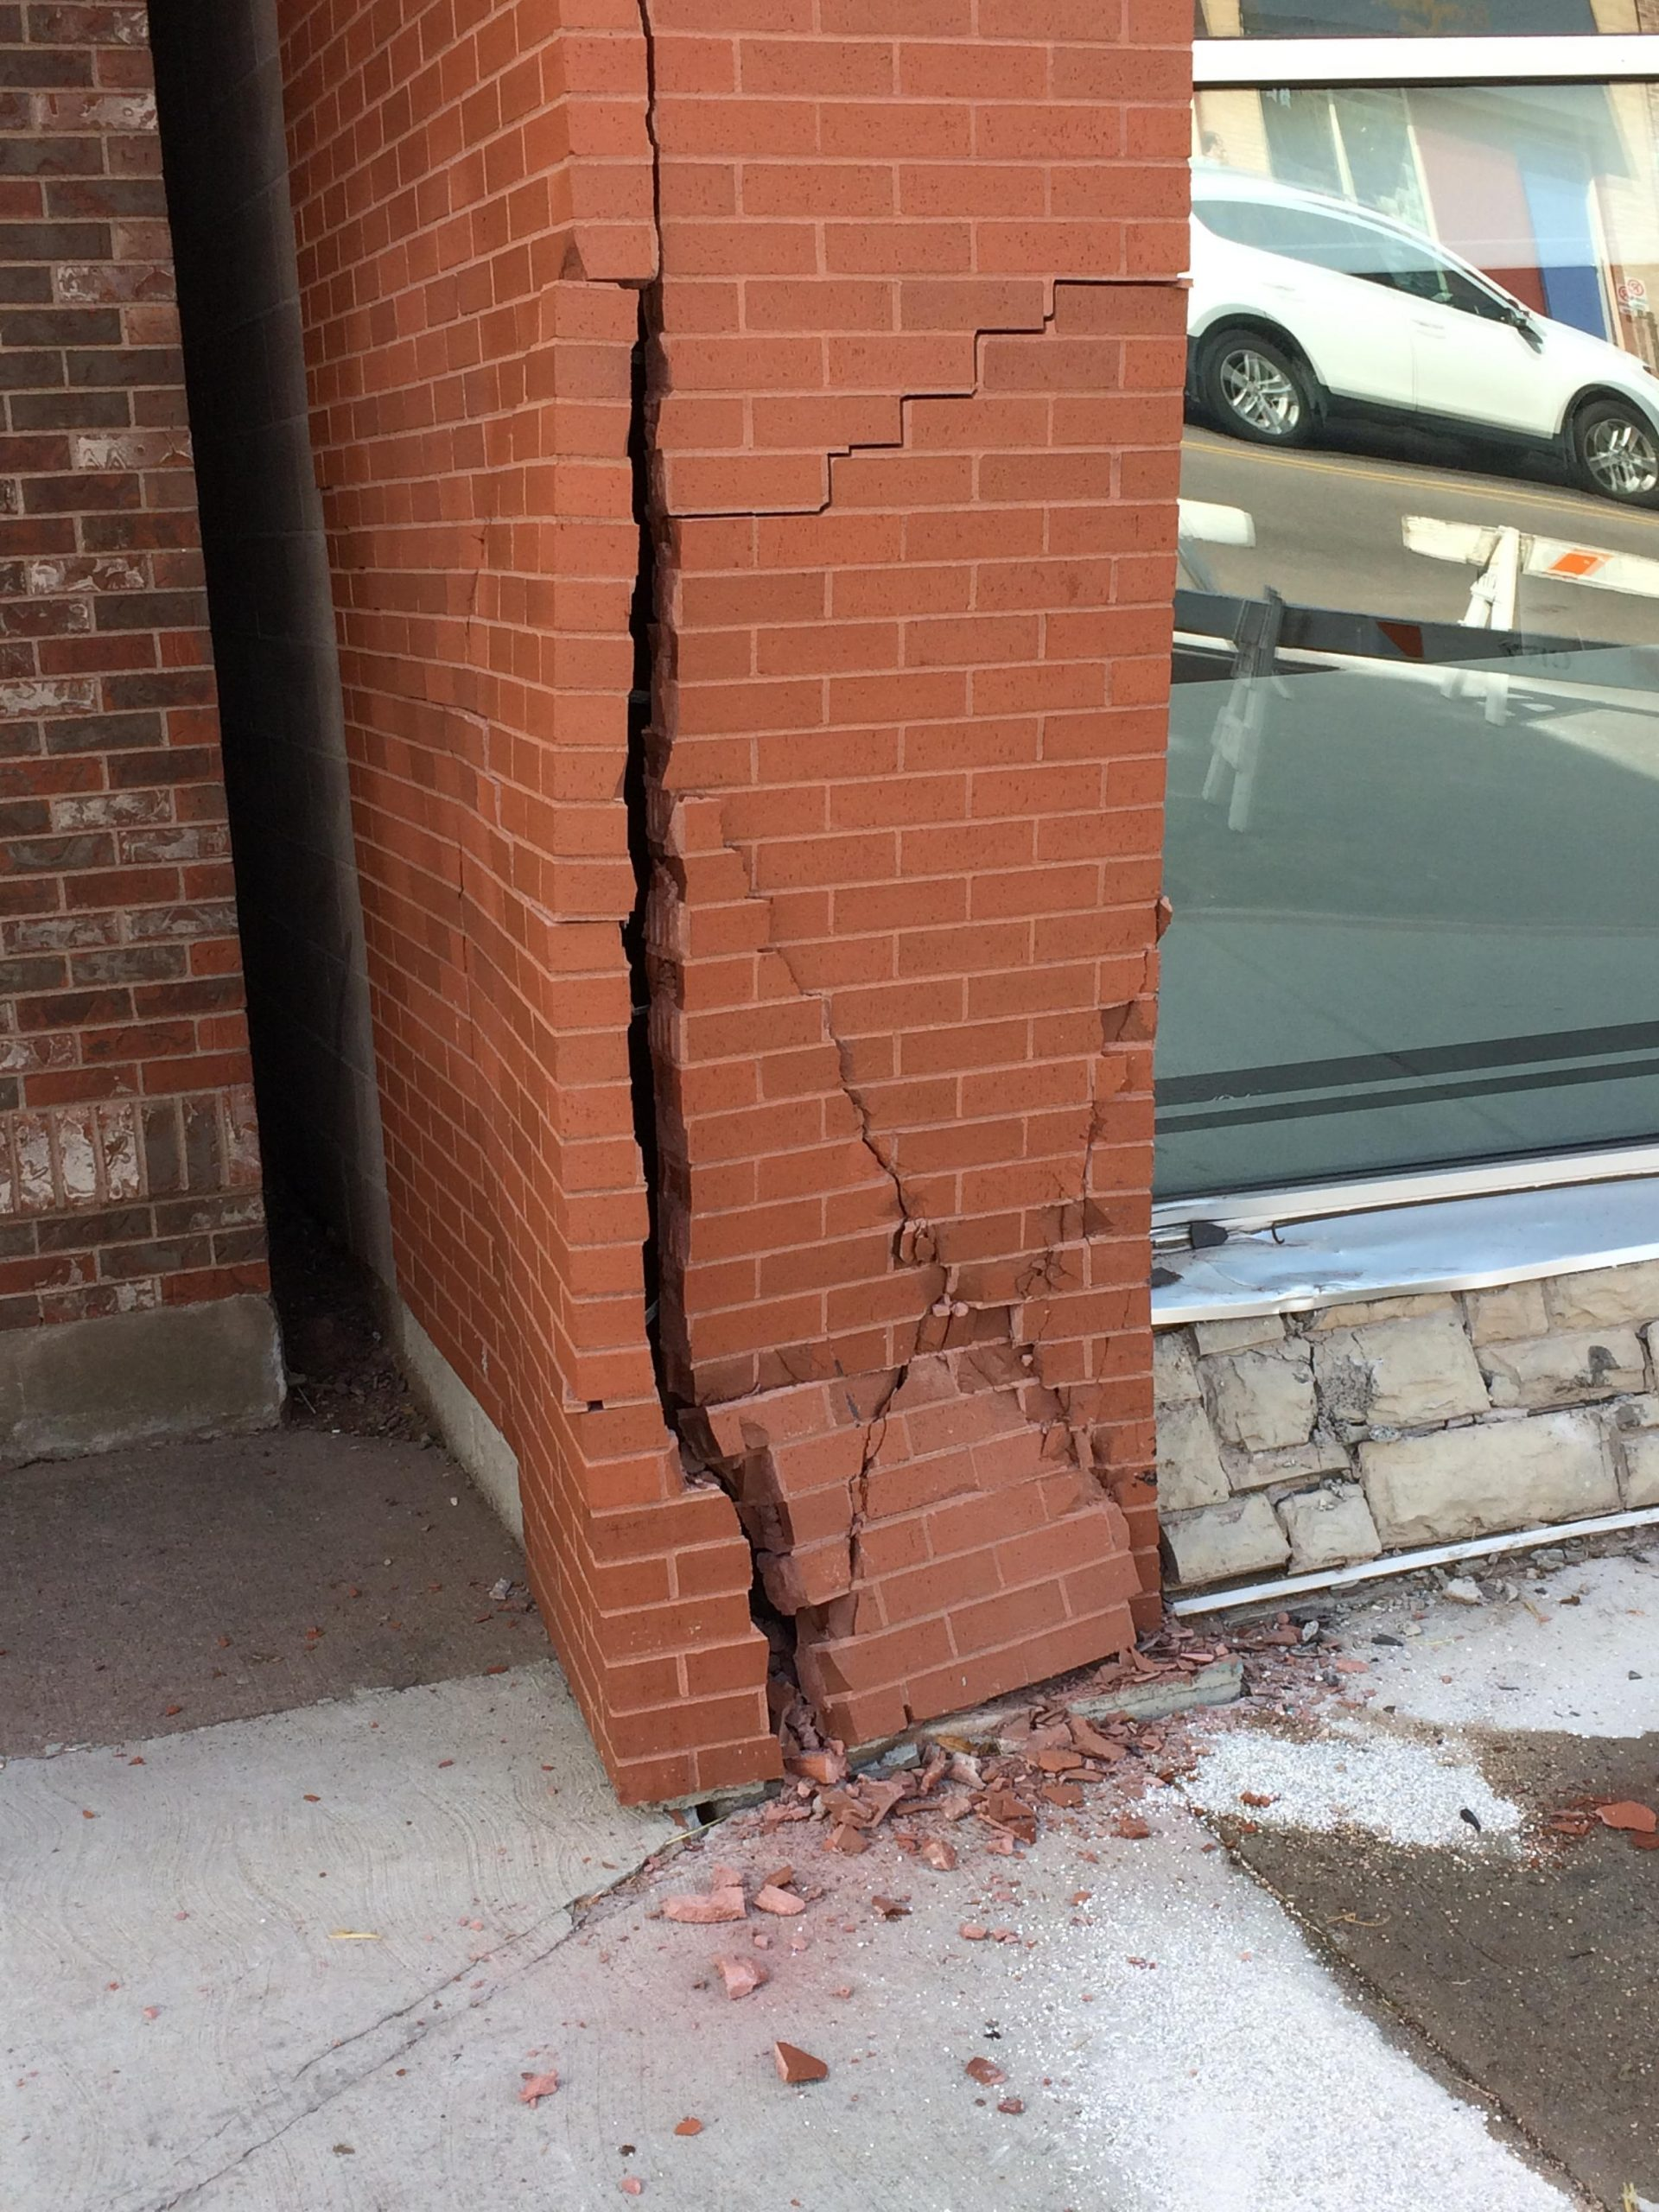 Car strikes building in downtown Charlottetown